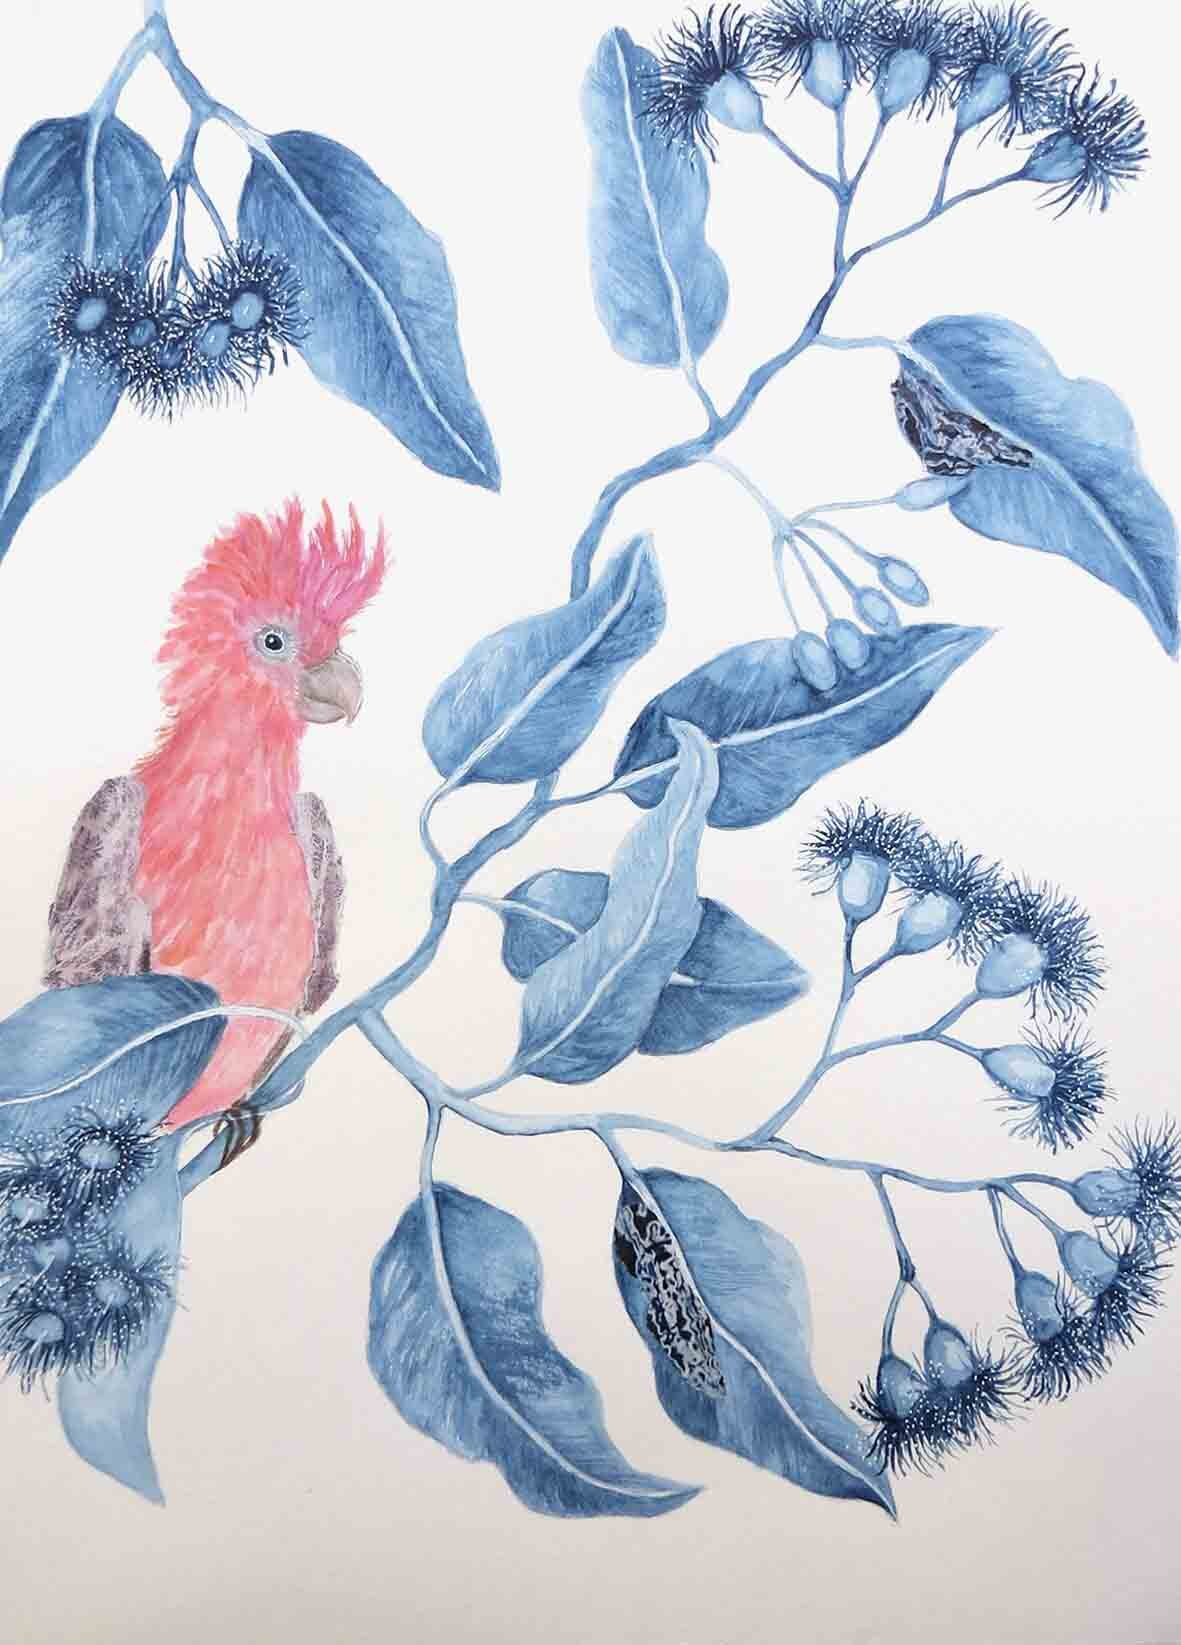 4. Jude Willis, Corymbia ficifolia with Pink and Grey Galah, 2019, watercolour and collage on paper, 42 x 29.5 cm $290